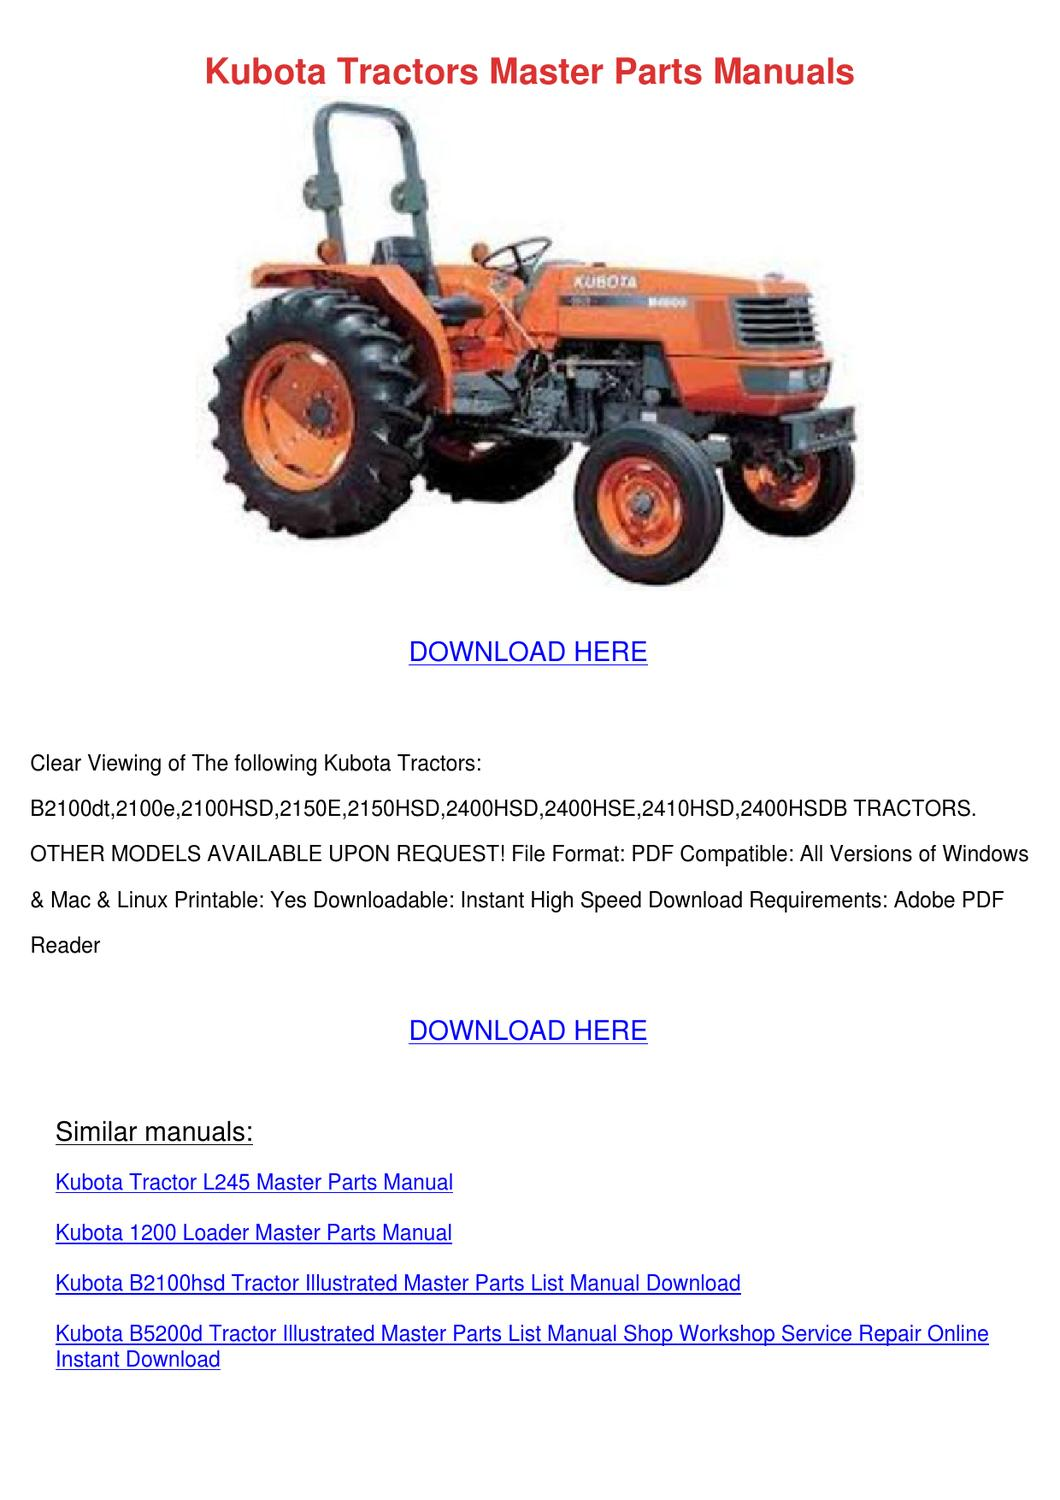 Kubota L245 Tractor Parts : Kubota tractors master parts manuals by hannahcoble issuu